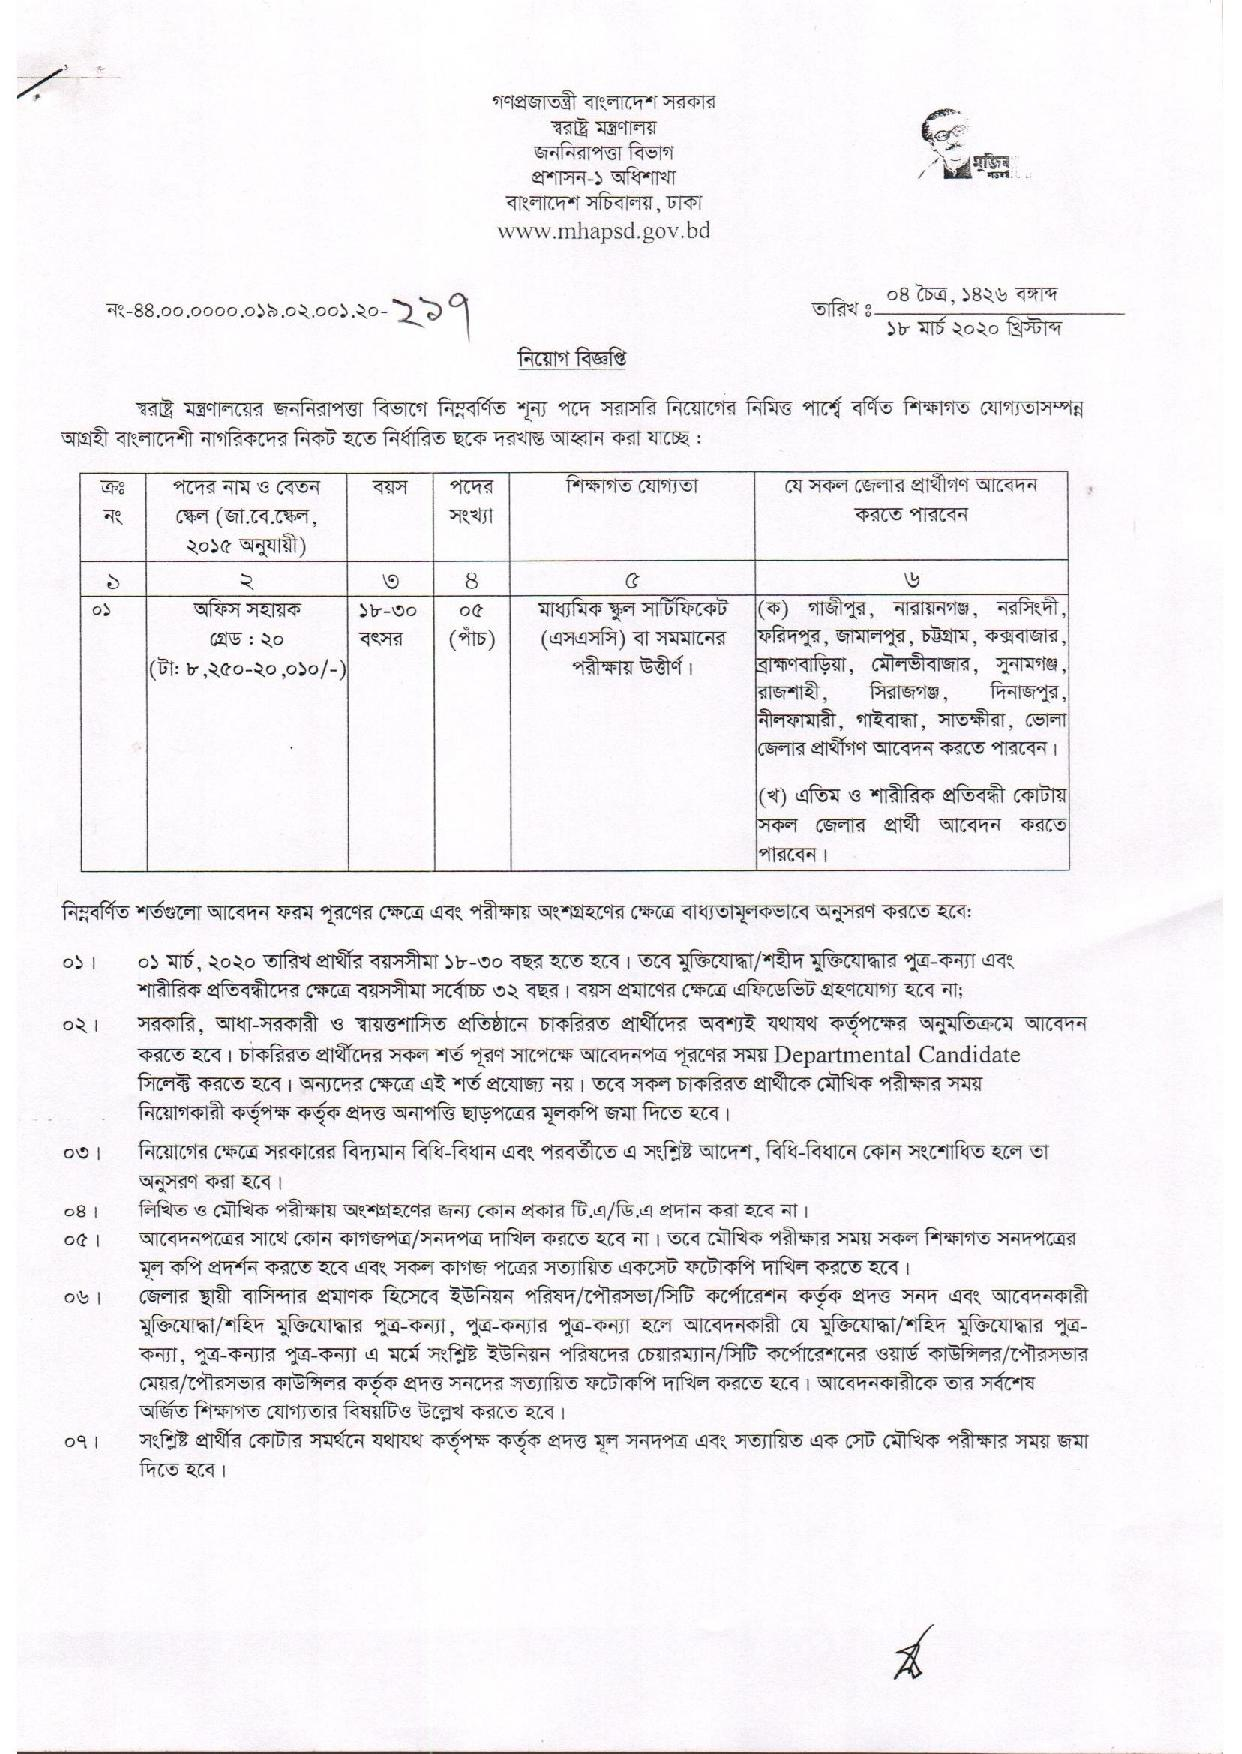 Public Security Division (PSD) Job Circular 2020